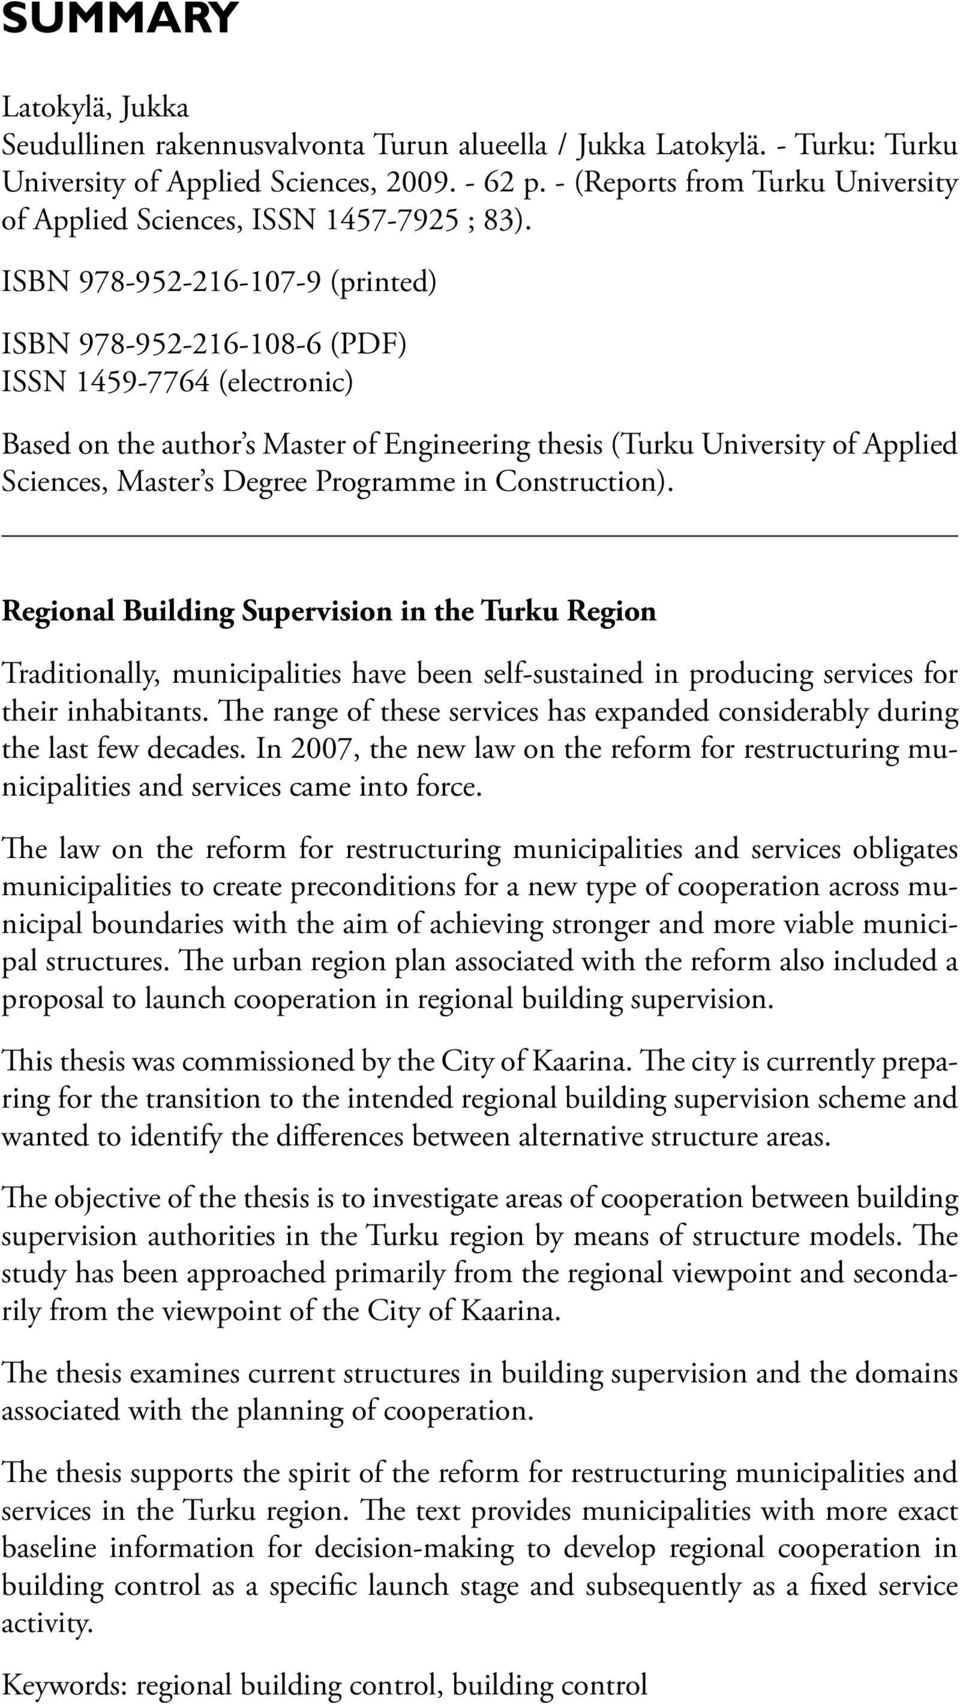 ISBN 978-952-216-107-9 (printed) ISBN 978-952-216-108-6 (PDF) ISSN 1459-7764 (electronic) Based on the author s Master of Engineering thesis (Turku University of Applied Sciences, Master s Degree